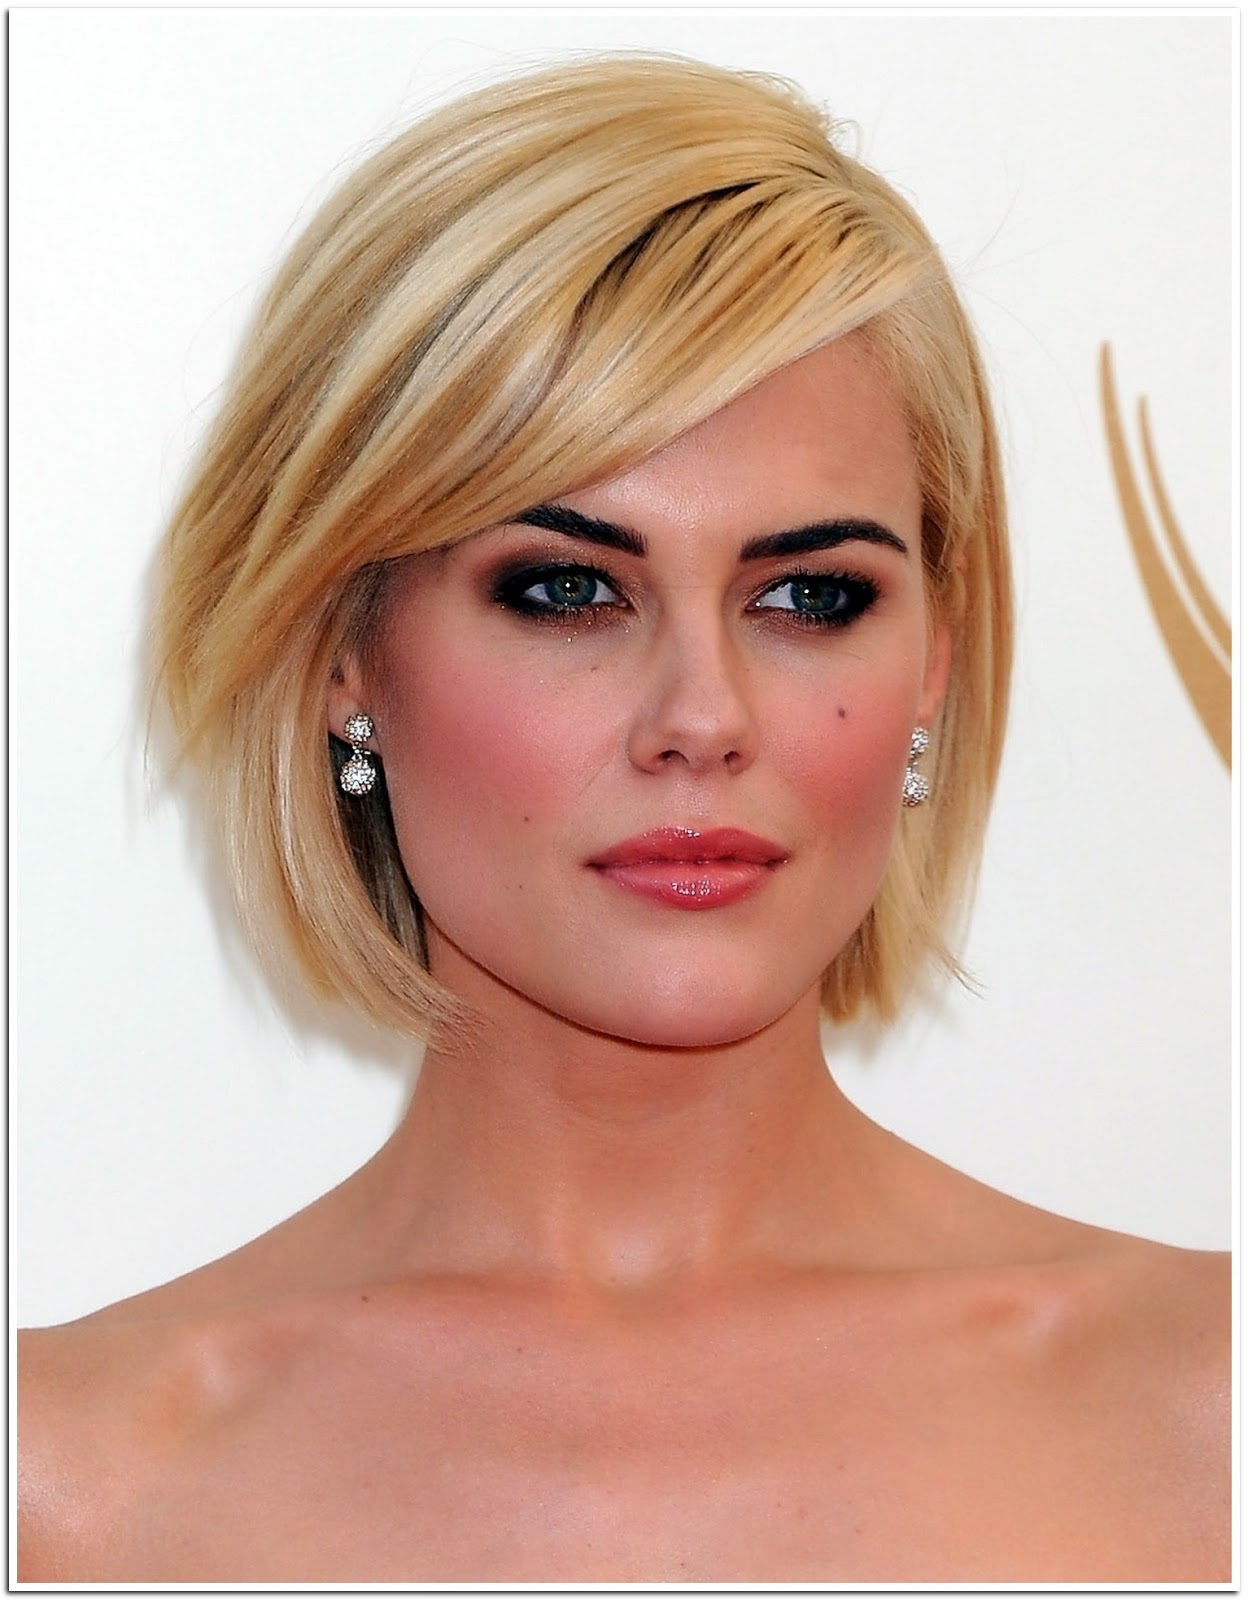 12 Formal Hairstyles For Short Hair You Can't Do Without Pertaining To Short Haircuts For Curvy Women (View 5 of 25)